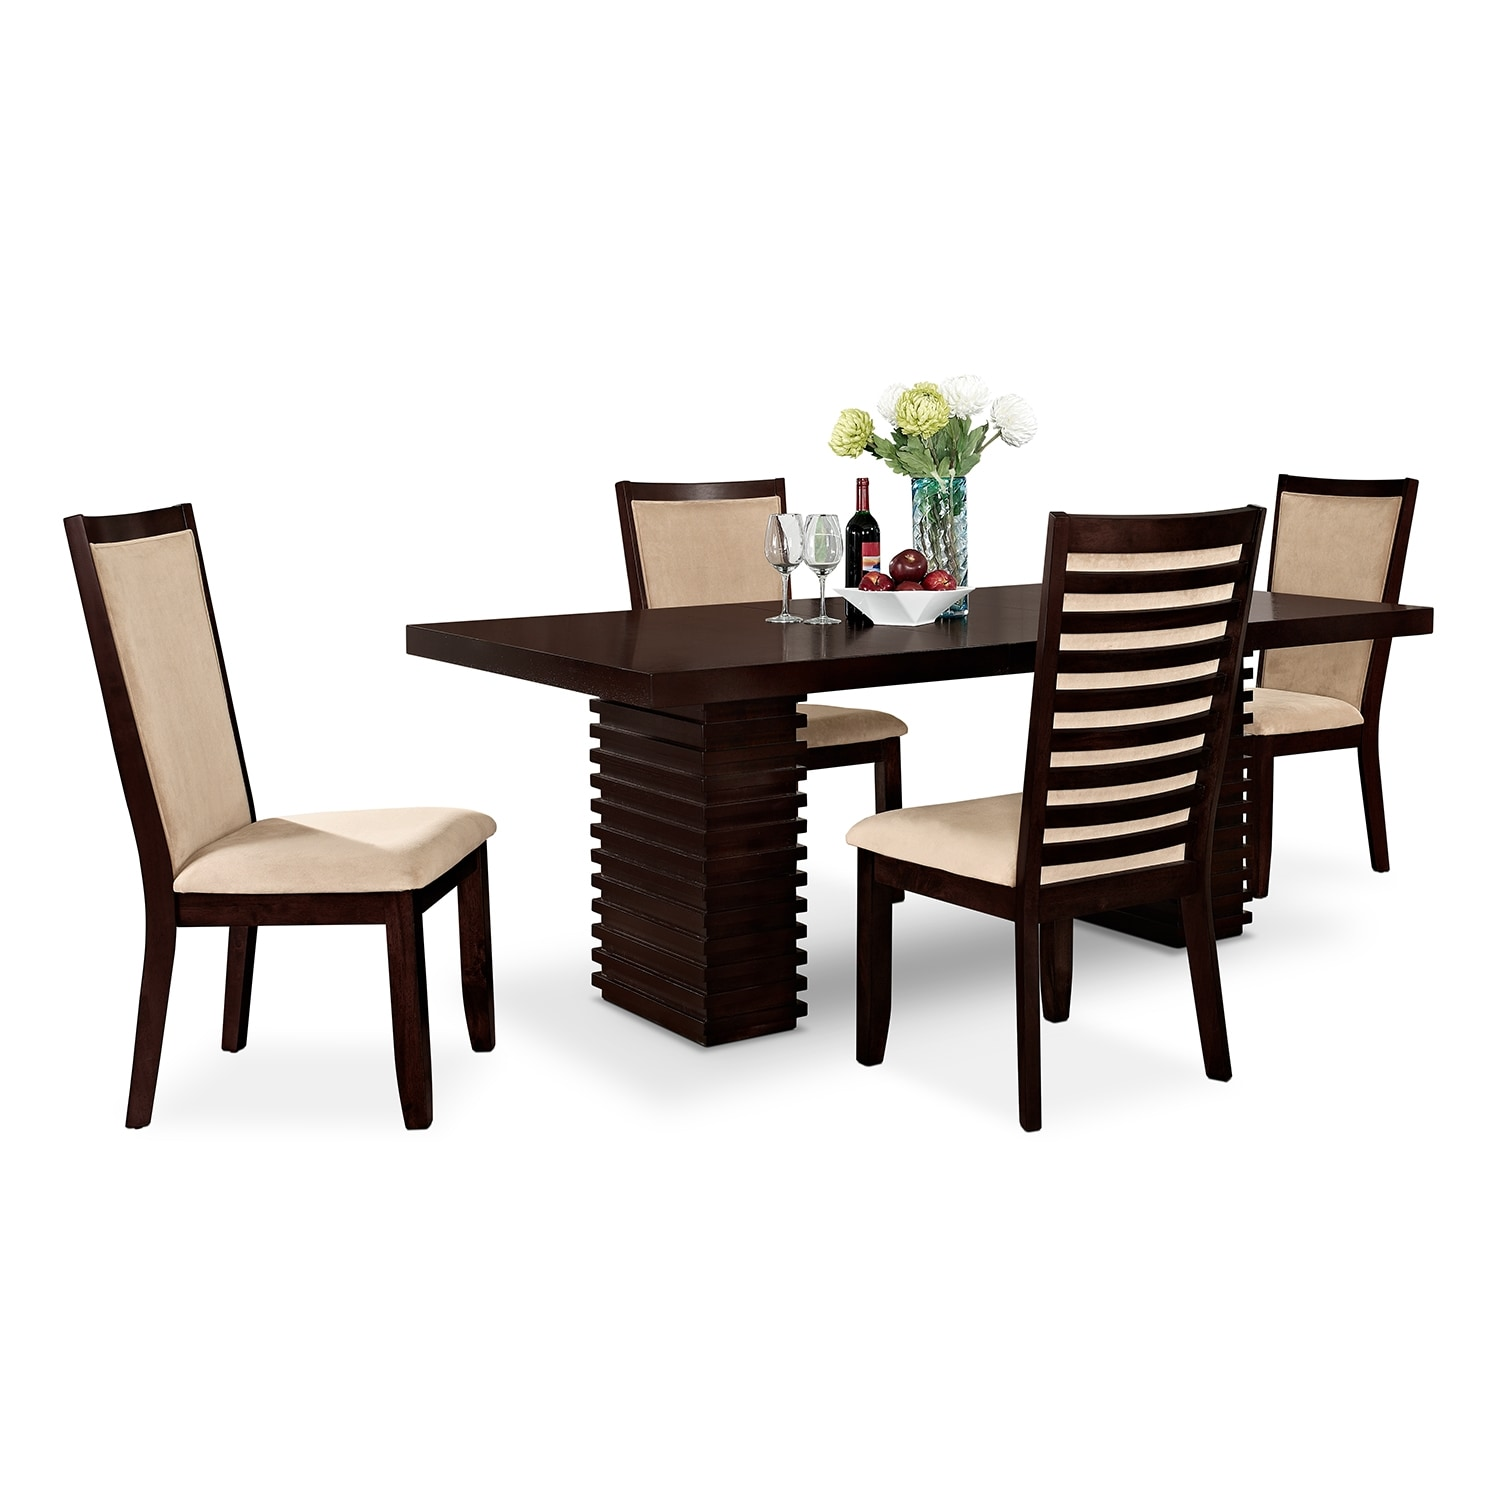 Paragon Table and 4 Chairs - Merlot and Camel